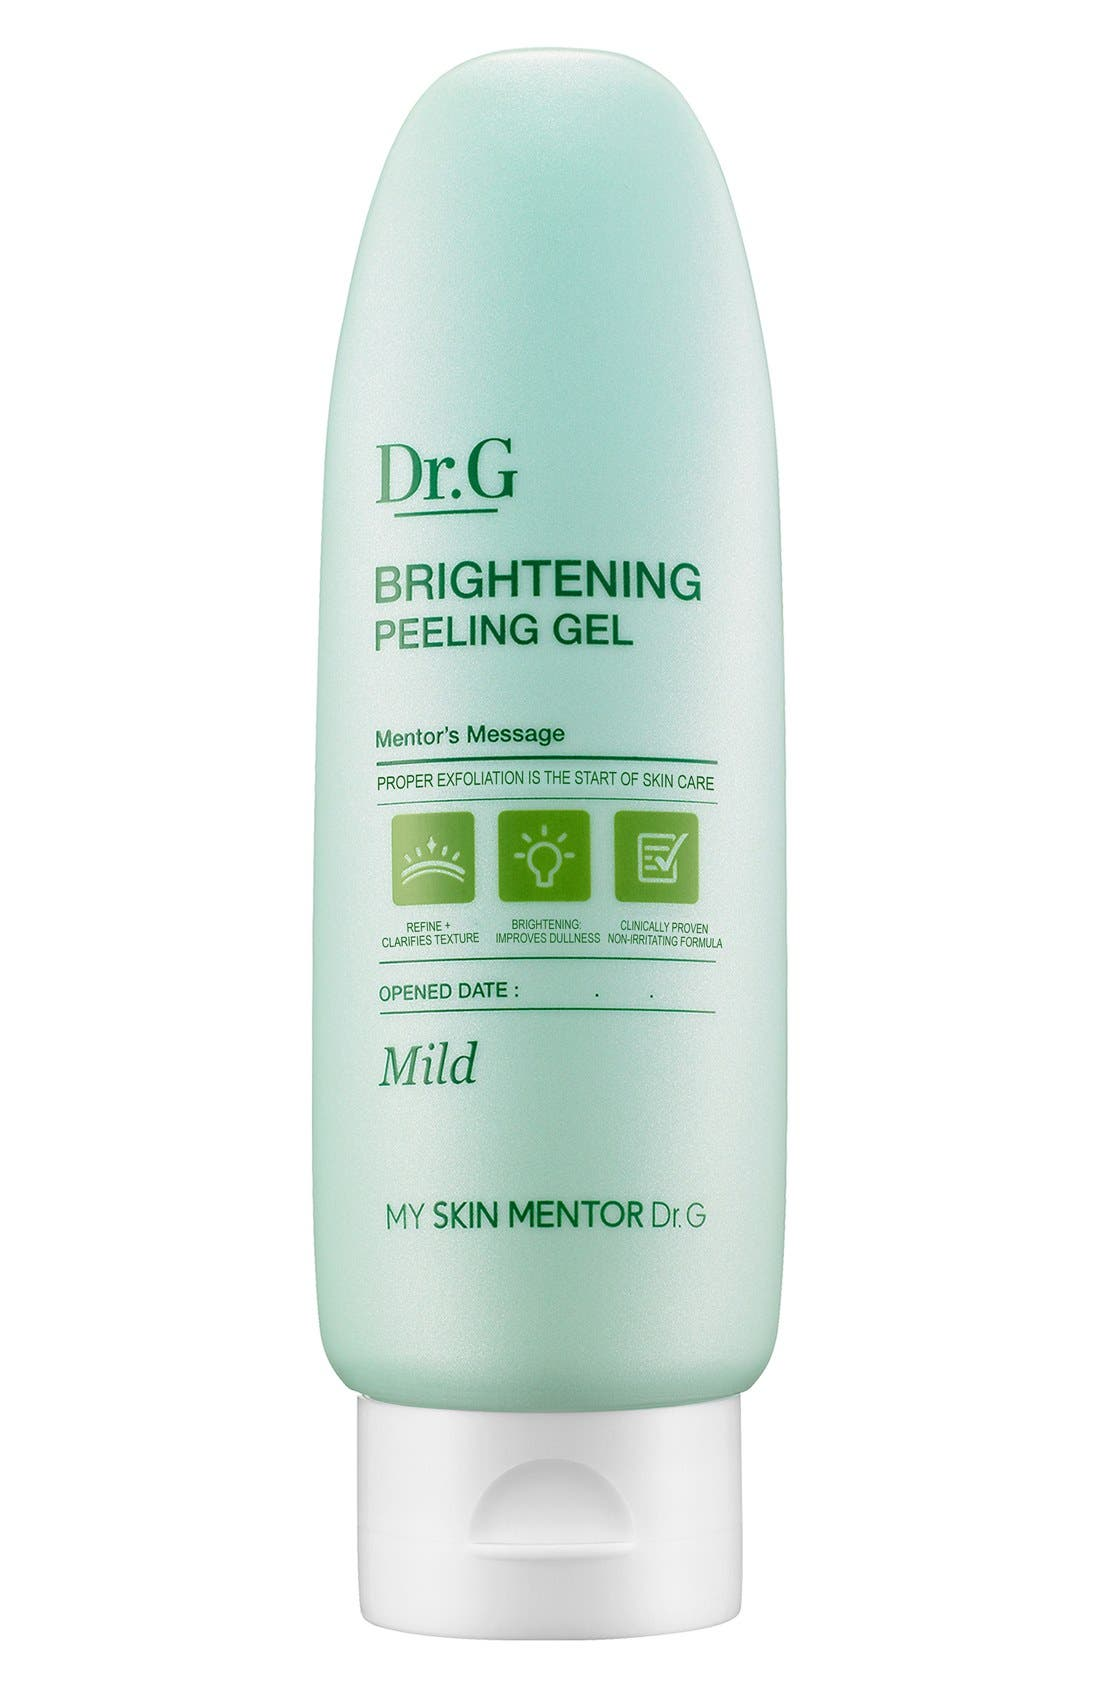 My Skin Mentor Dr. G Beauty Brightening Peeling Gel